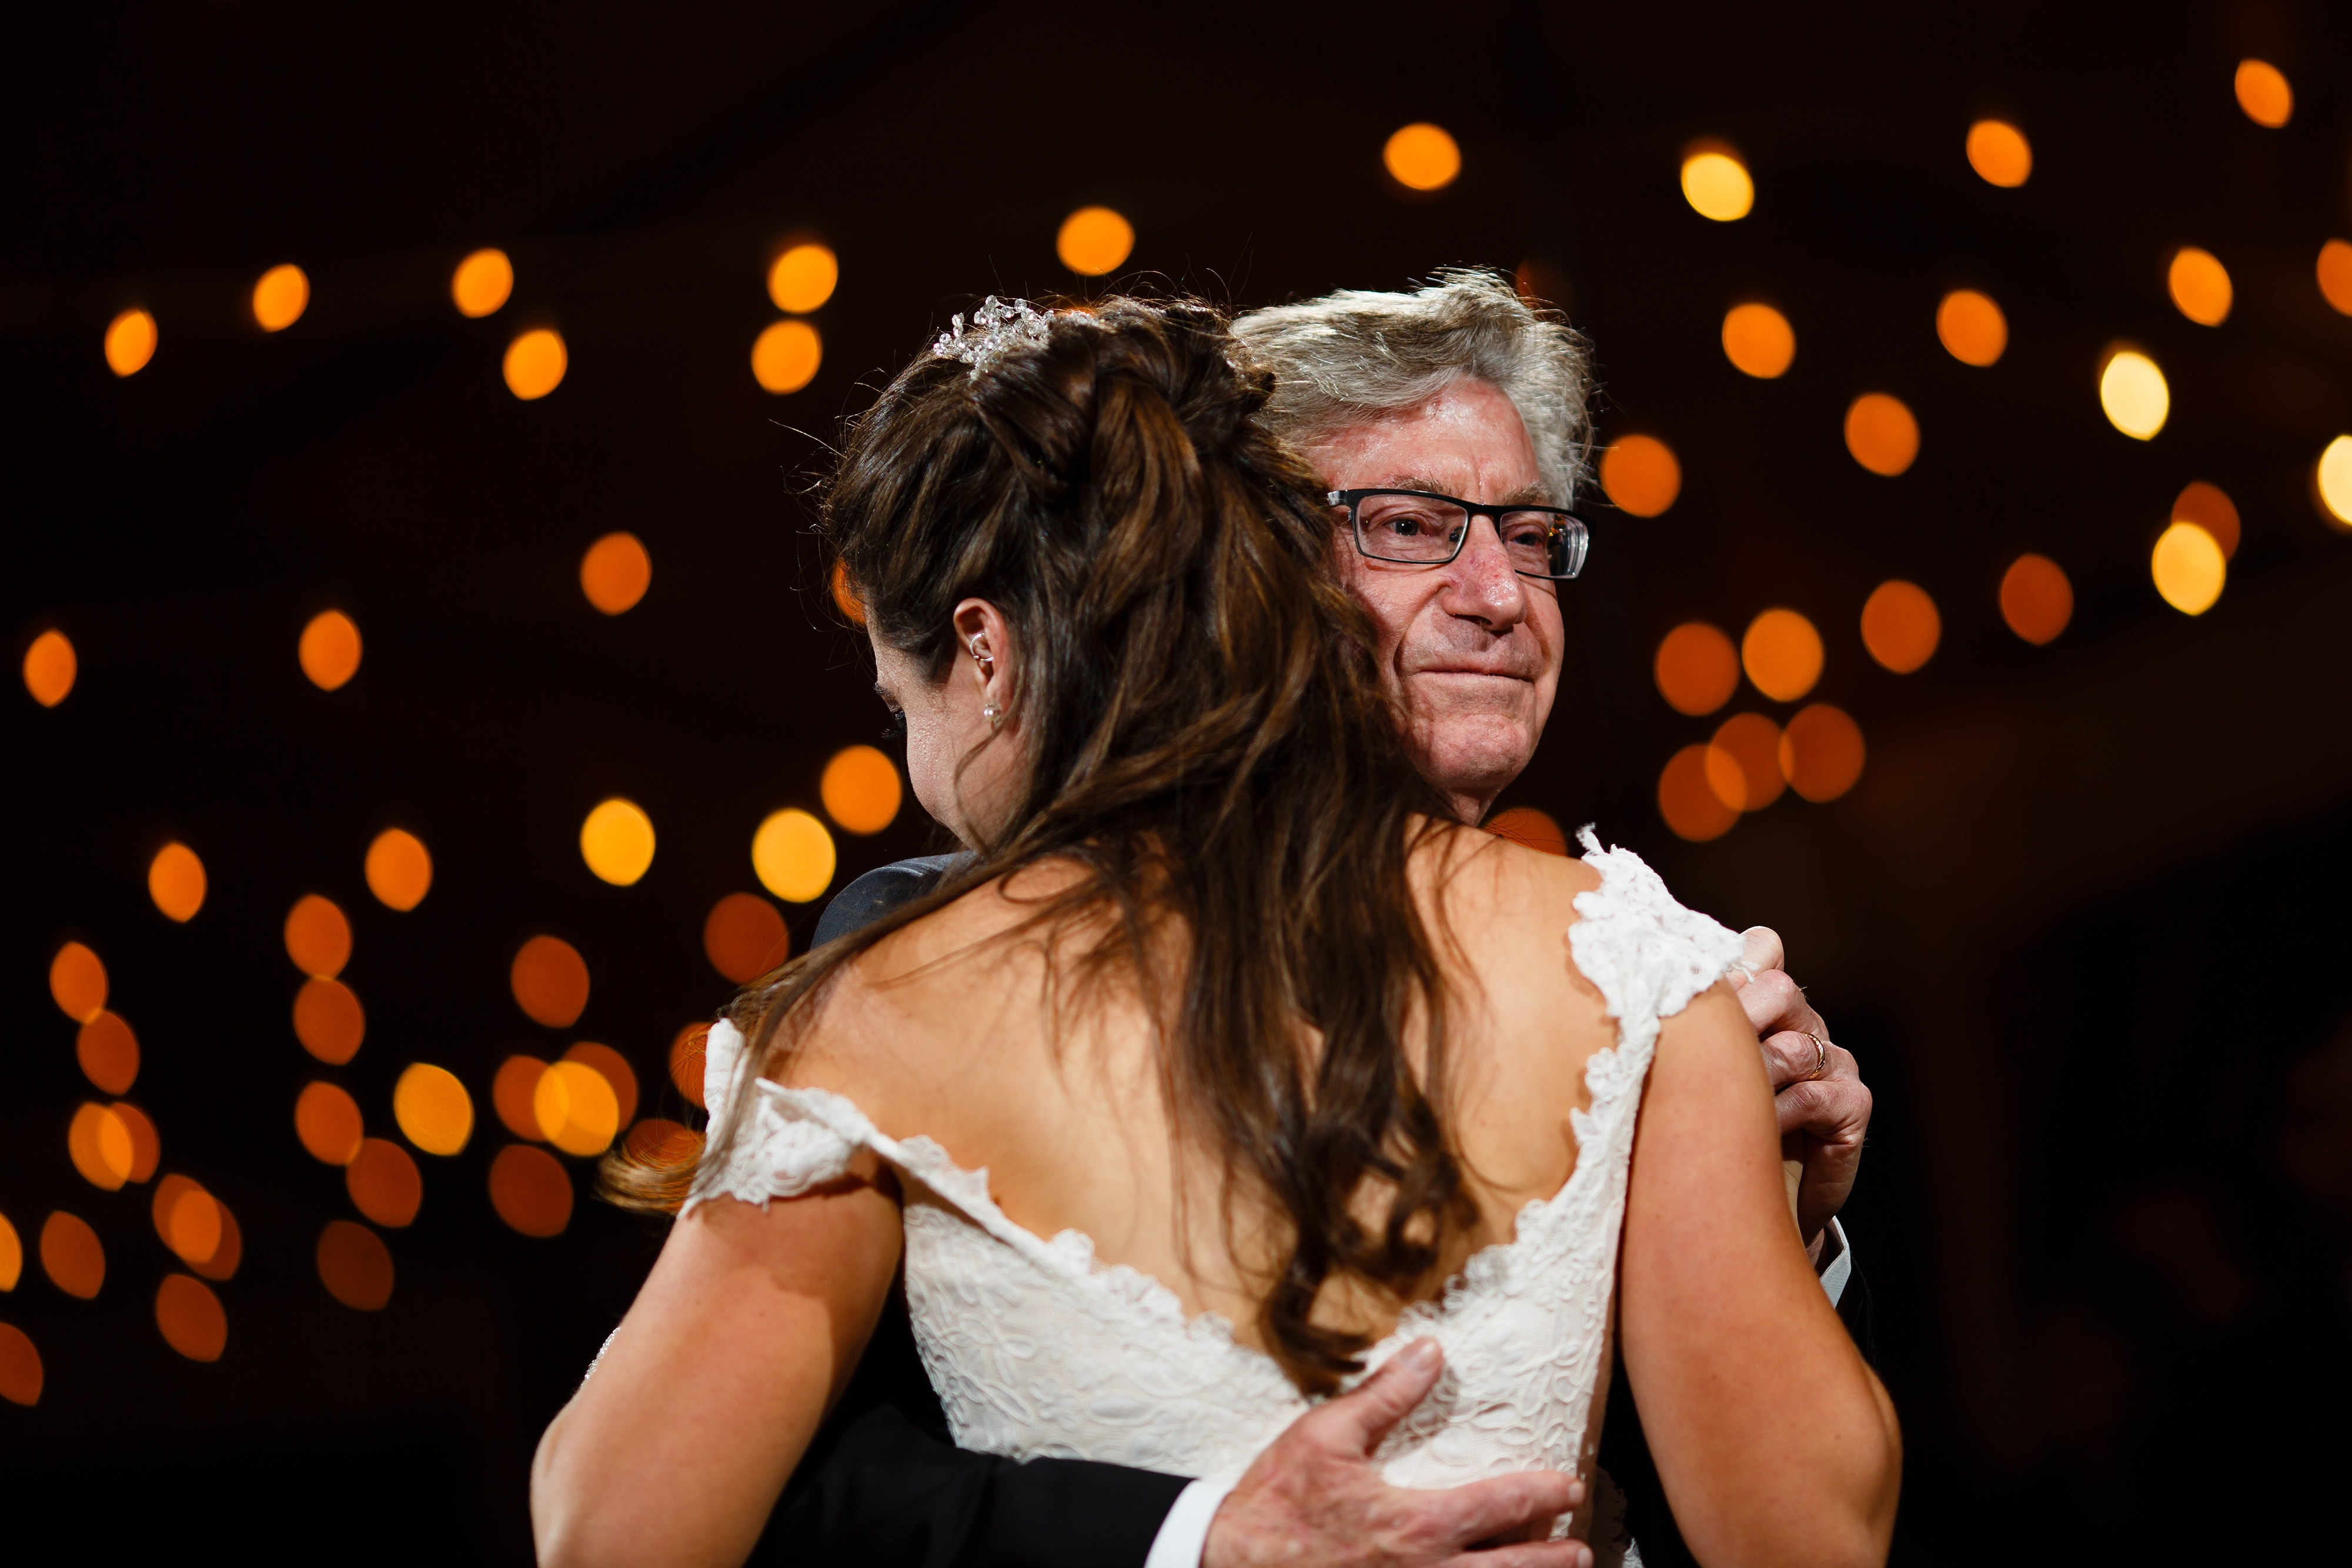 Richard dances with his daughter